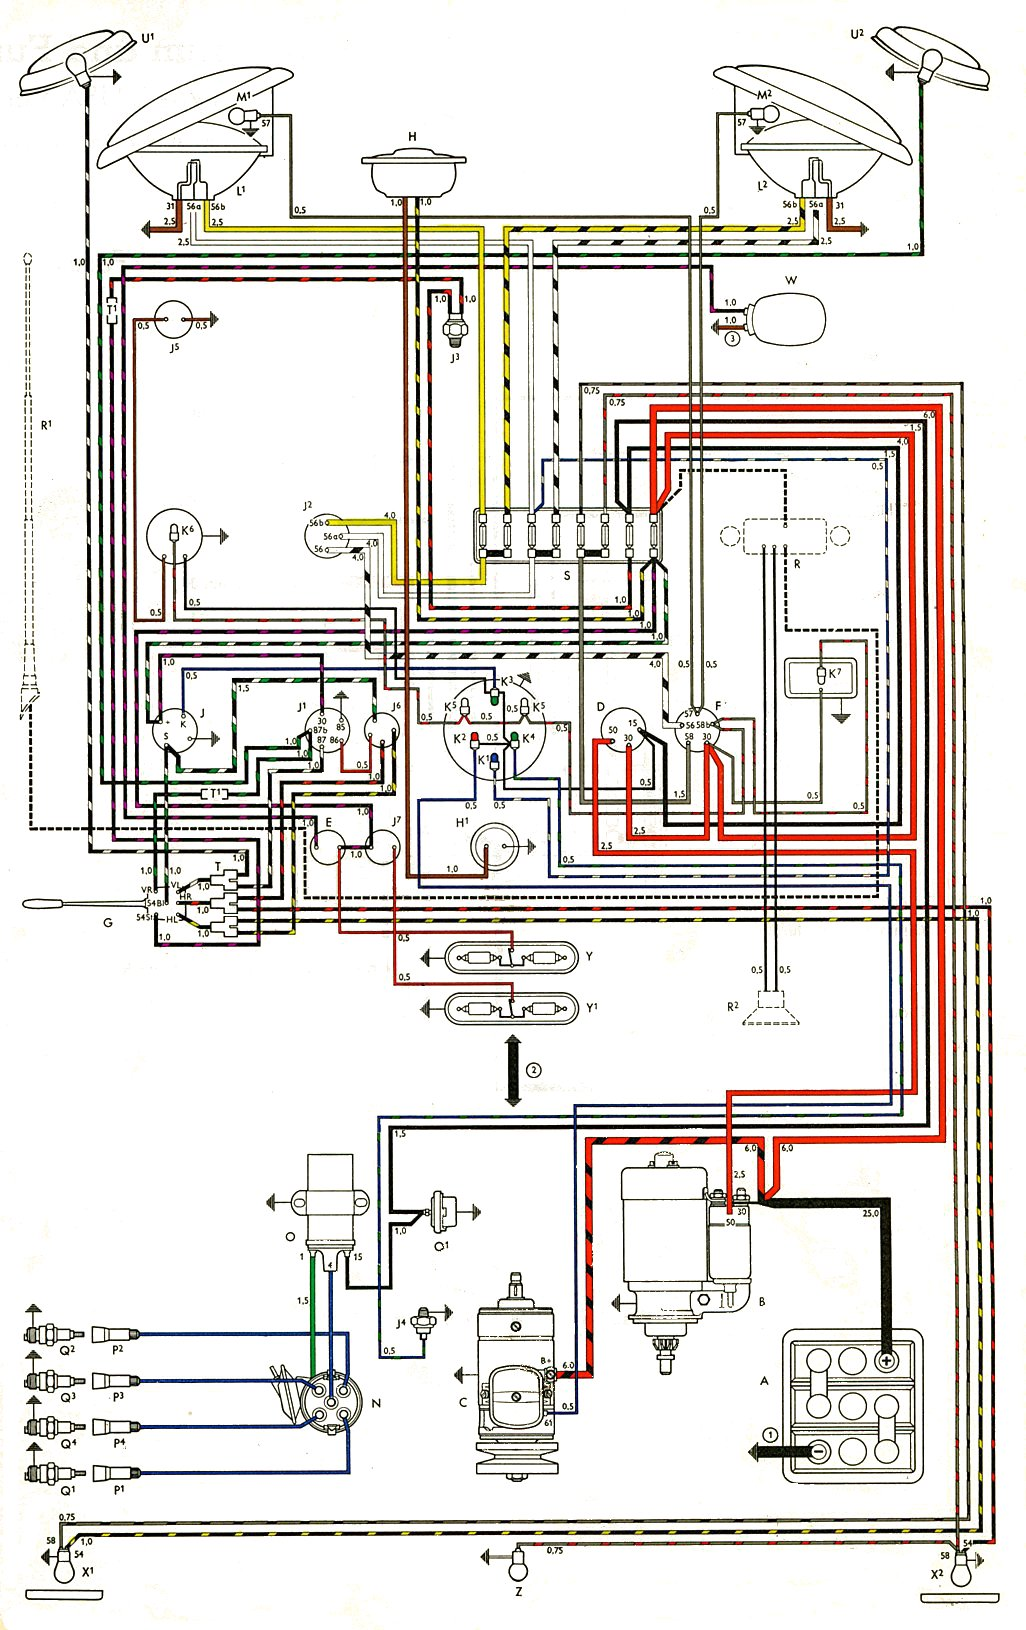 Wiring Diagram For 1964 Vw Bus - Wiring Diagram Directory on eurovan wiring diagram, type 181 wiring diagram, volvo wiring diagram, audi wiring diagram, van wiring diagram, mitsubishi wiring diagram, corvette wiring diagram, dodge wiring diagram, type 3 wiring diagram, bug wiring diagram, chrysler wiring diagram, vw wiring diagram, chevrolet wiring diagram, jeep wiring diagram, toyota wiring diagram, acura wiring diagram, mgb wiring diagram, lincoln wiring diagram, mustang wiring diagram, austin healey wiring diagram,